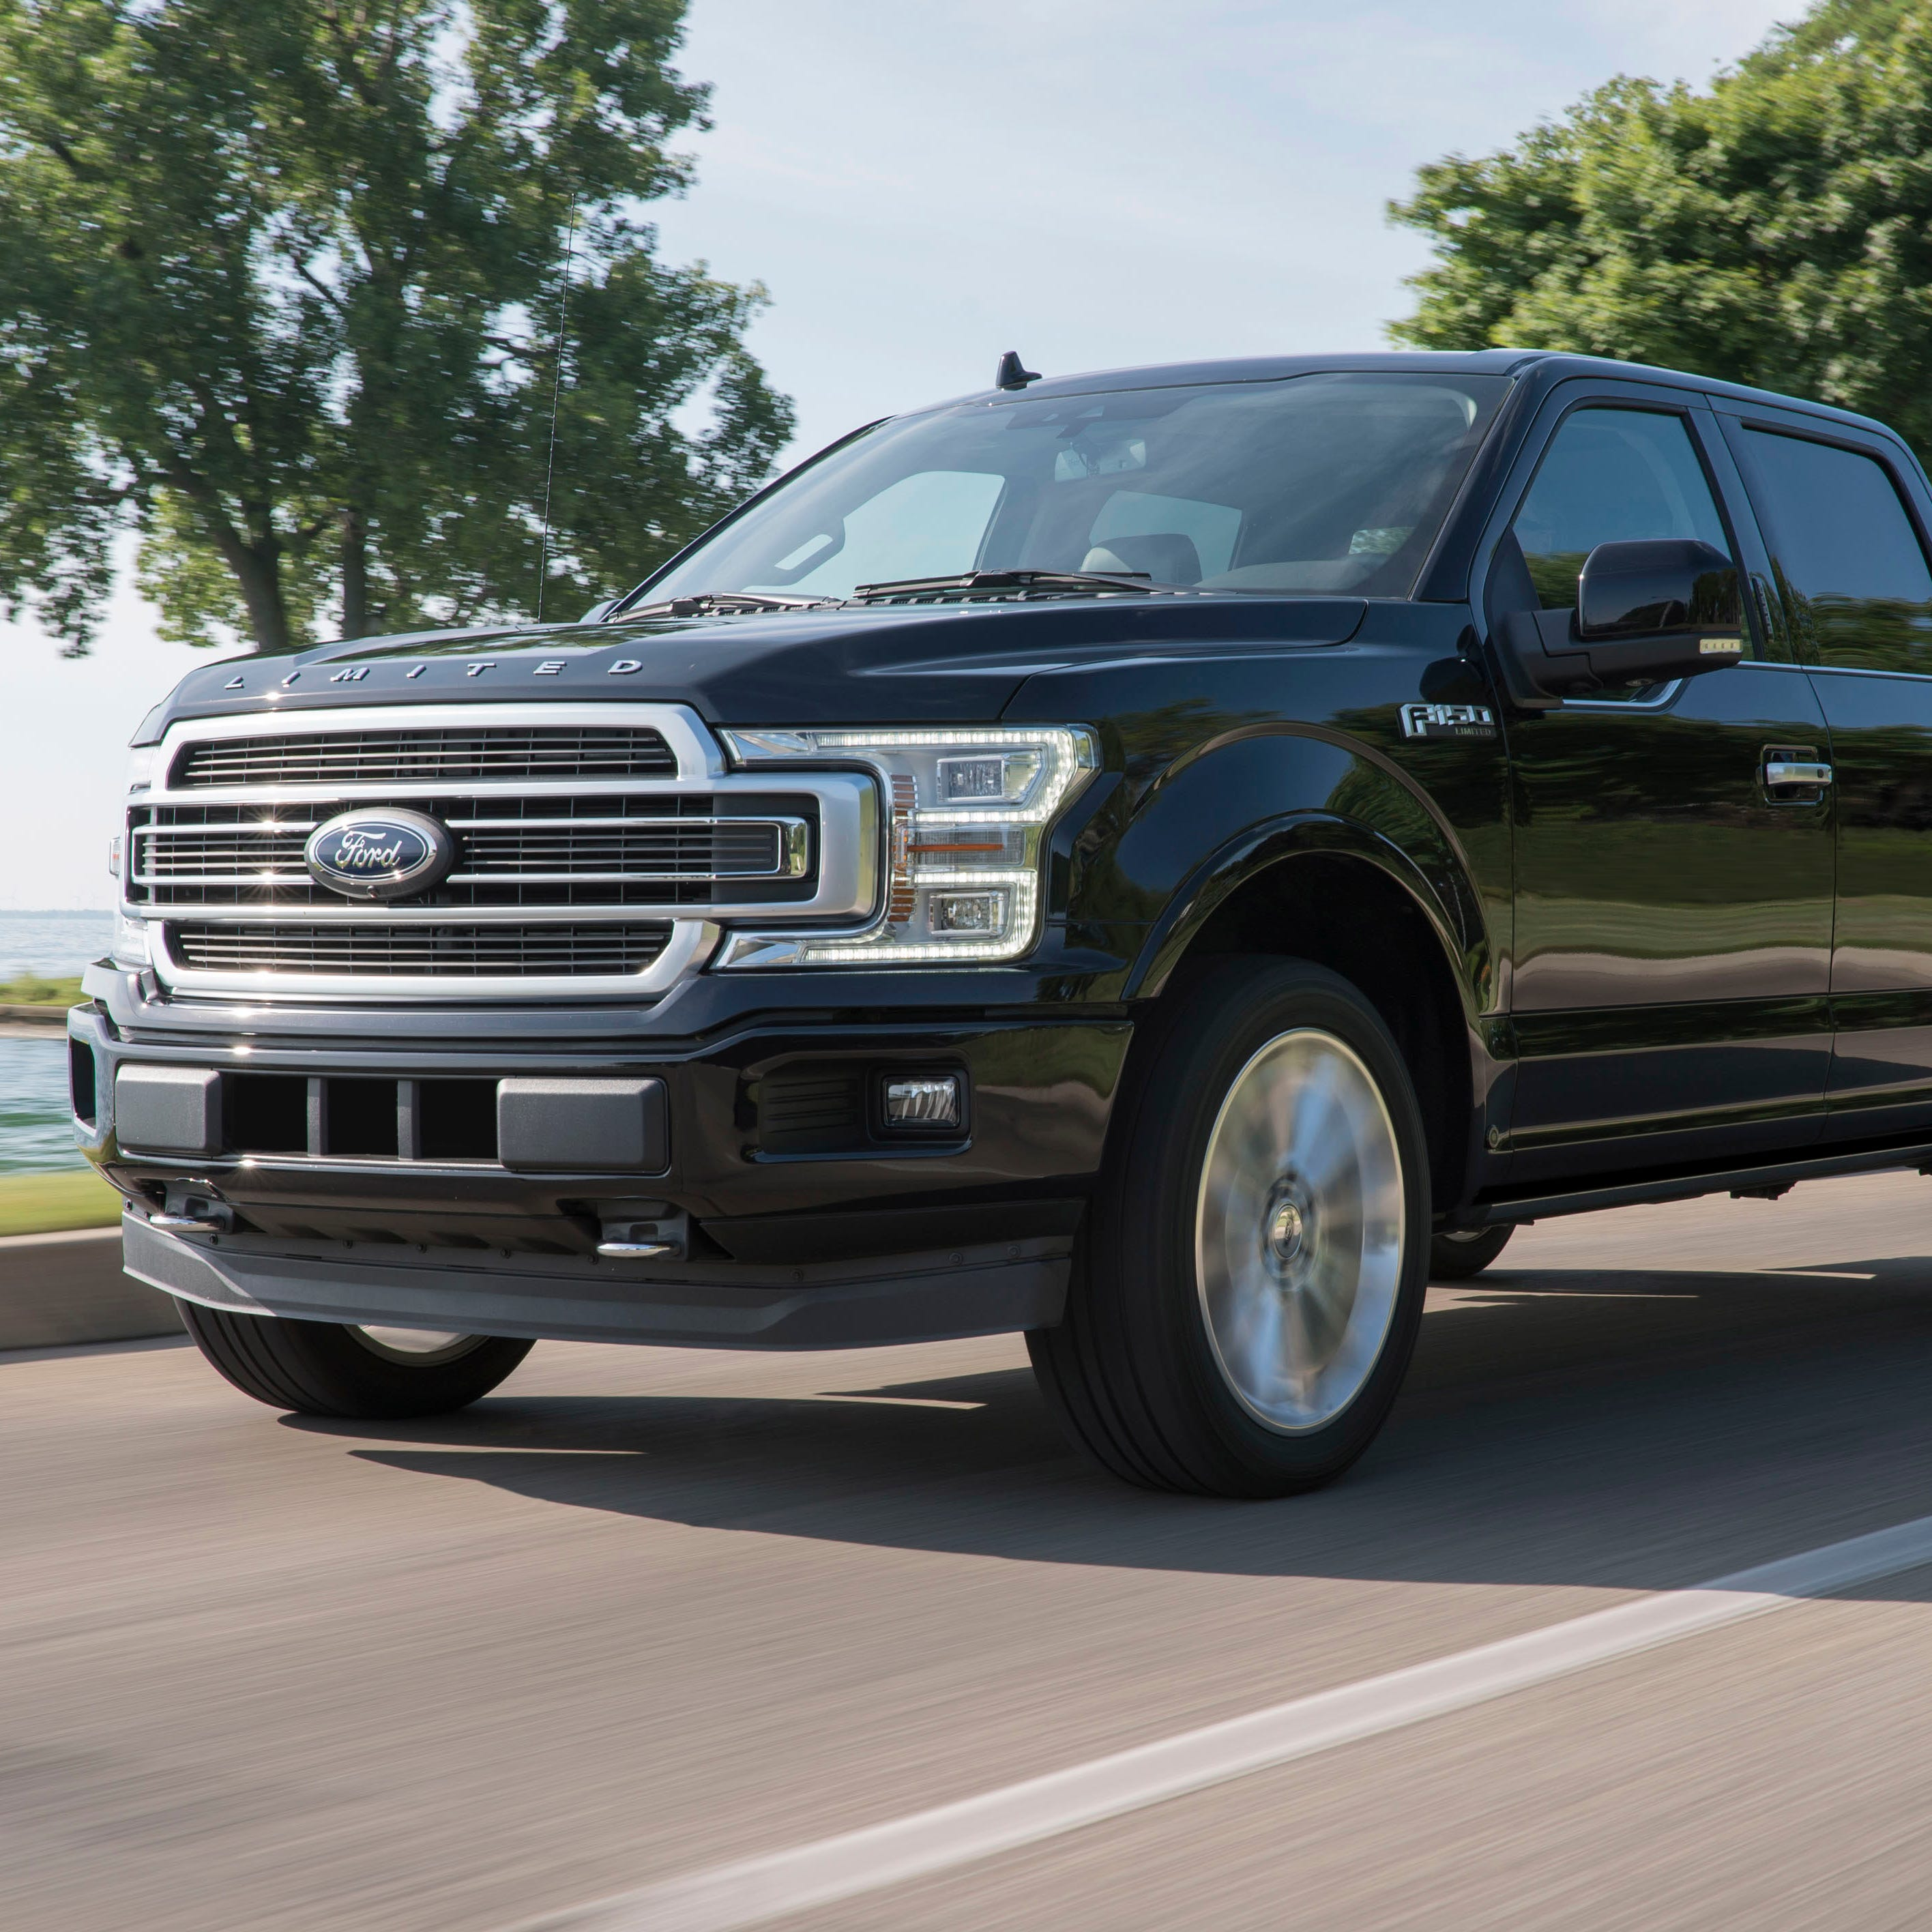 Ford F-150 top pickup, Subaru top brand in Consumer Reports rankings